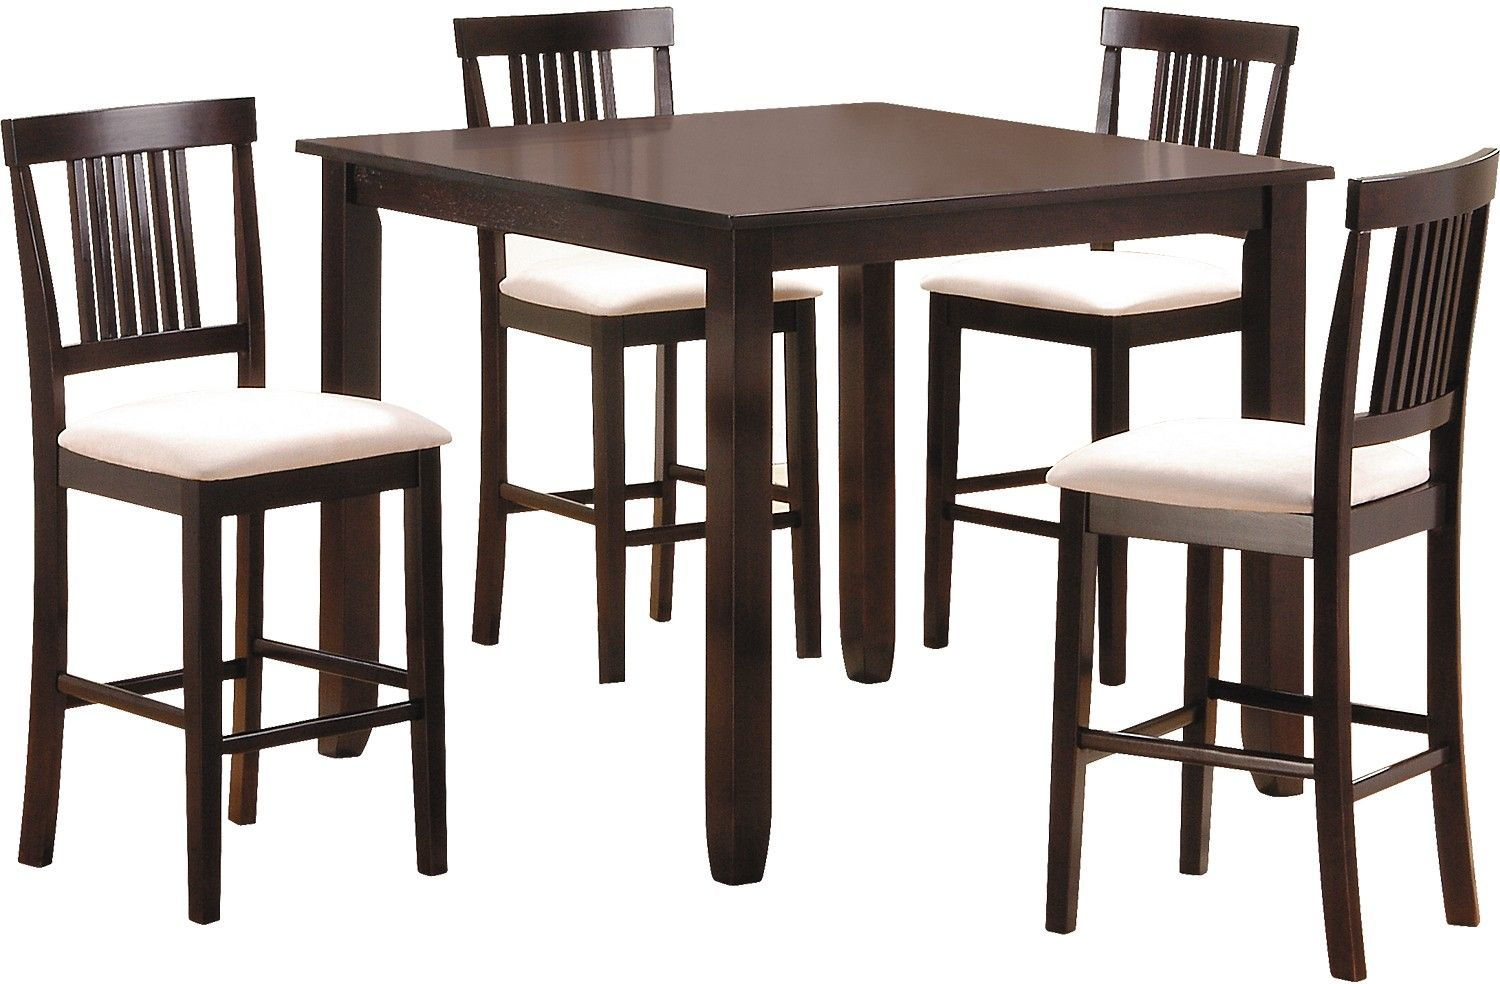 Charmant Nicole 5 Piece Counter Height Dining Package   The Brick